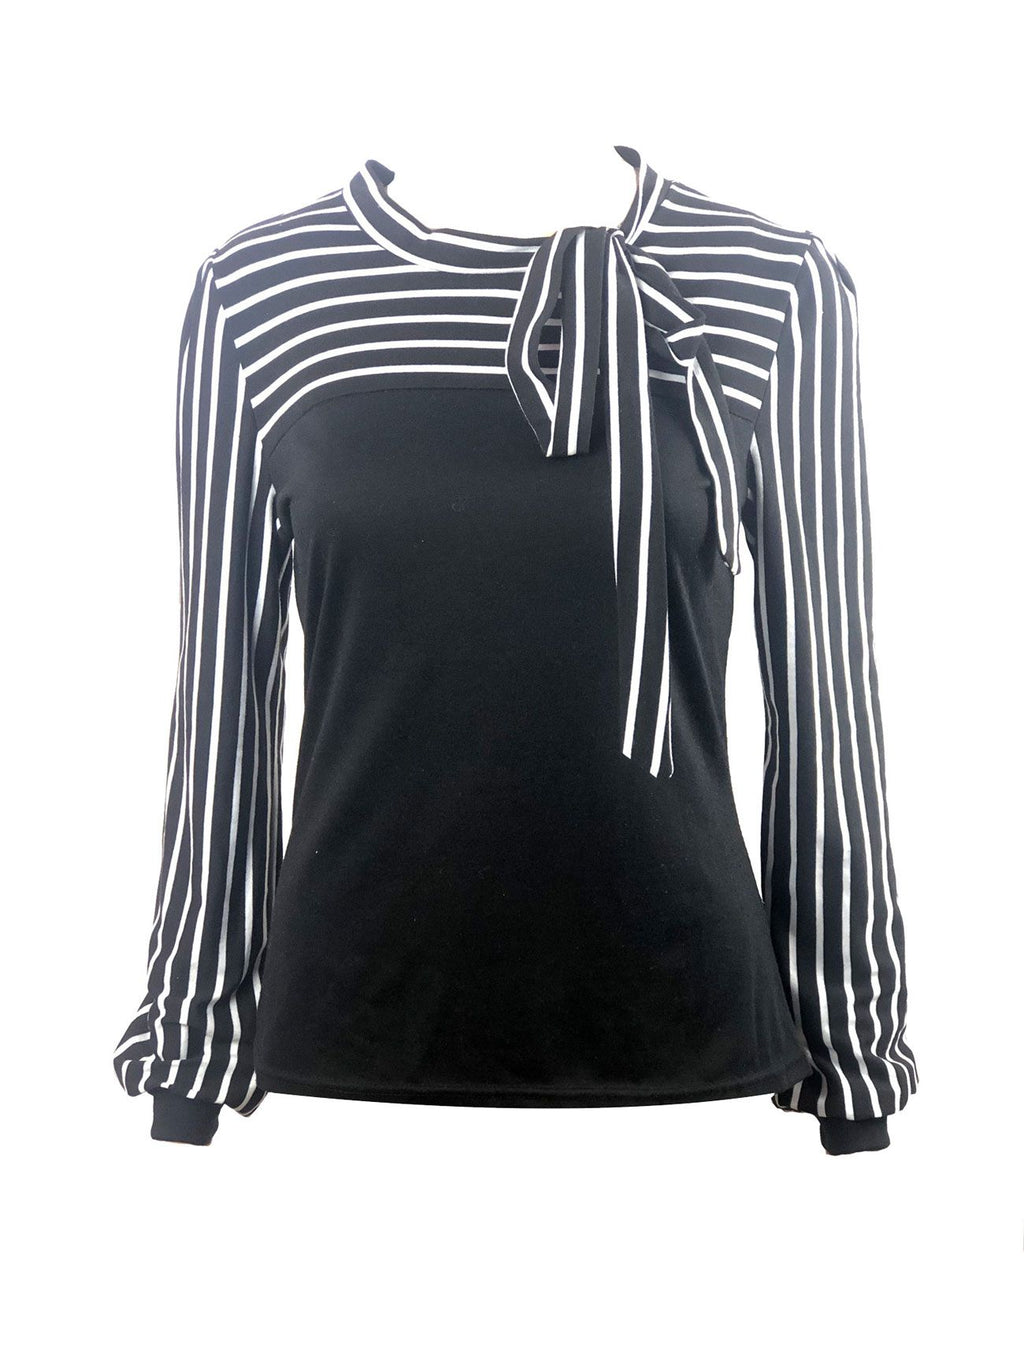 Pulls Femme d'occasion - Taille 42 - XL